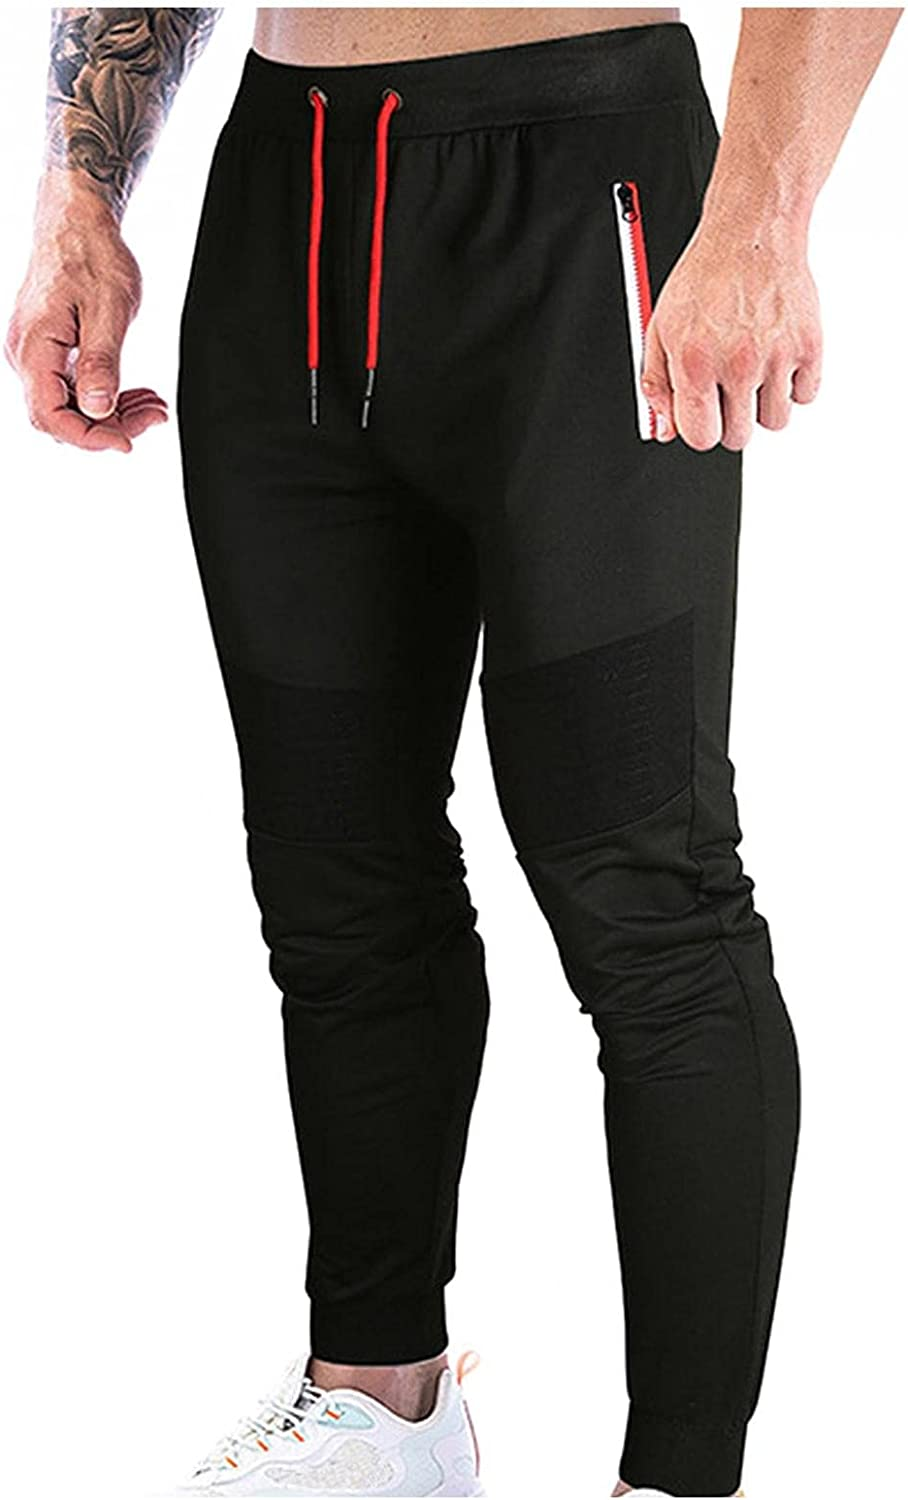 Men's Lightweight Jogger Sweatpants Athletic Workout Running Pants Tapered Track for Men with Zipper Pockets